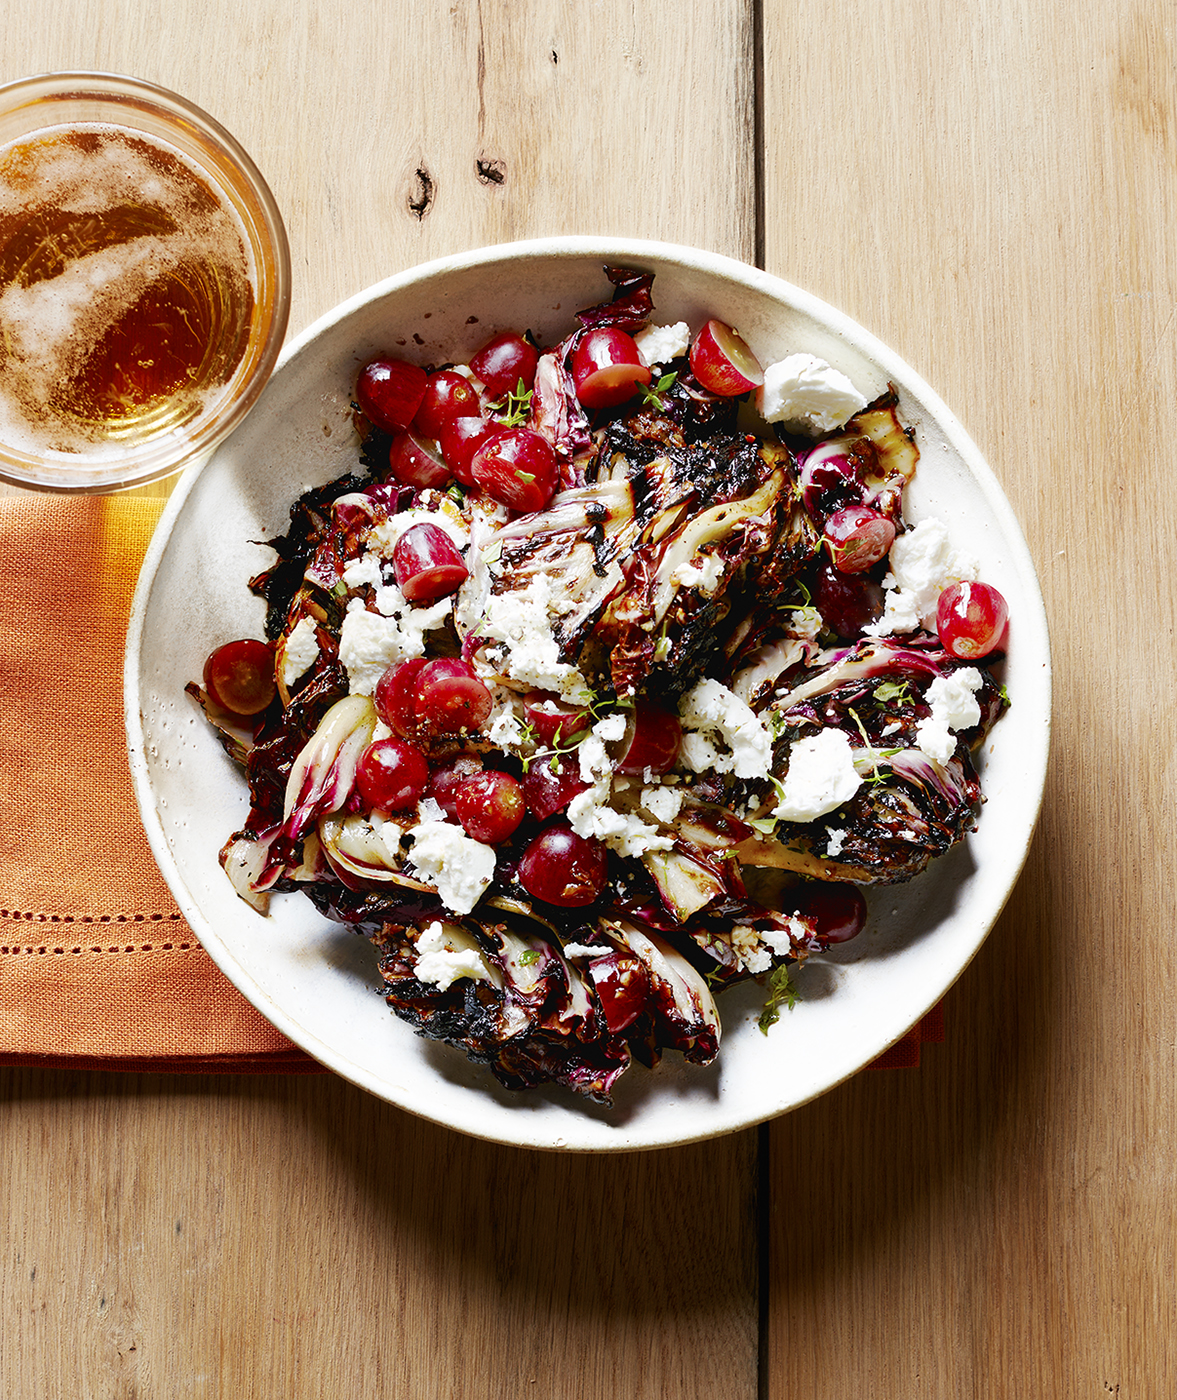 Thanksgiving Salad: Grilled Radicchio Salad With Goat Cheese, Thyme, and Grapes